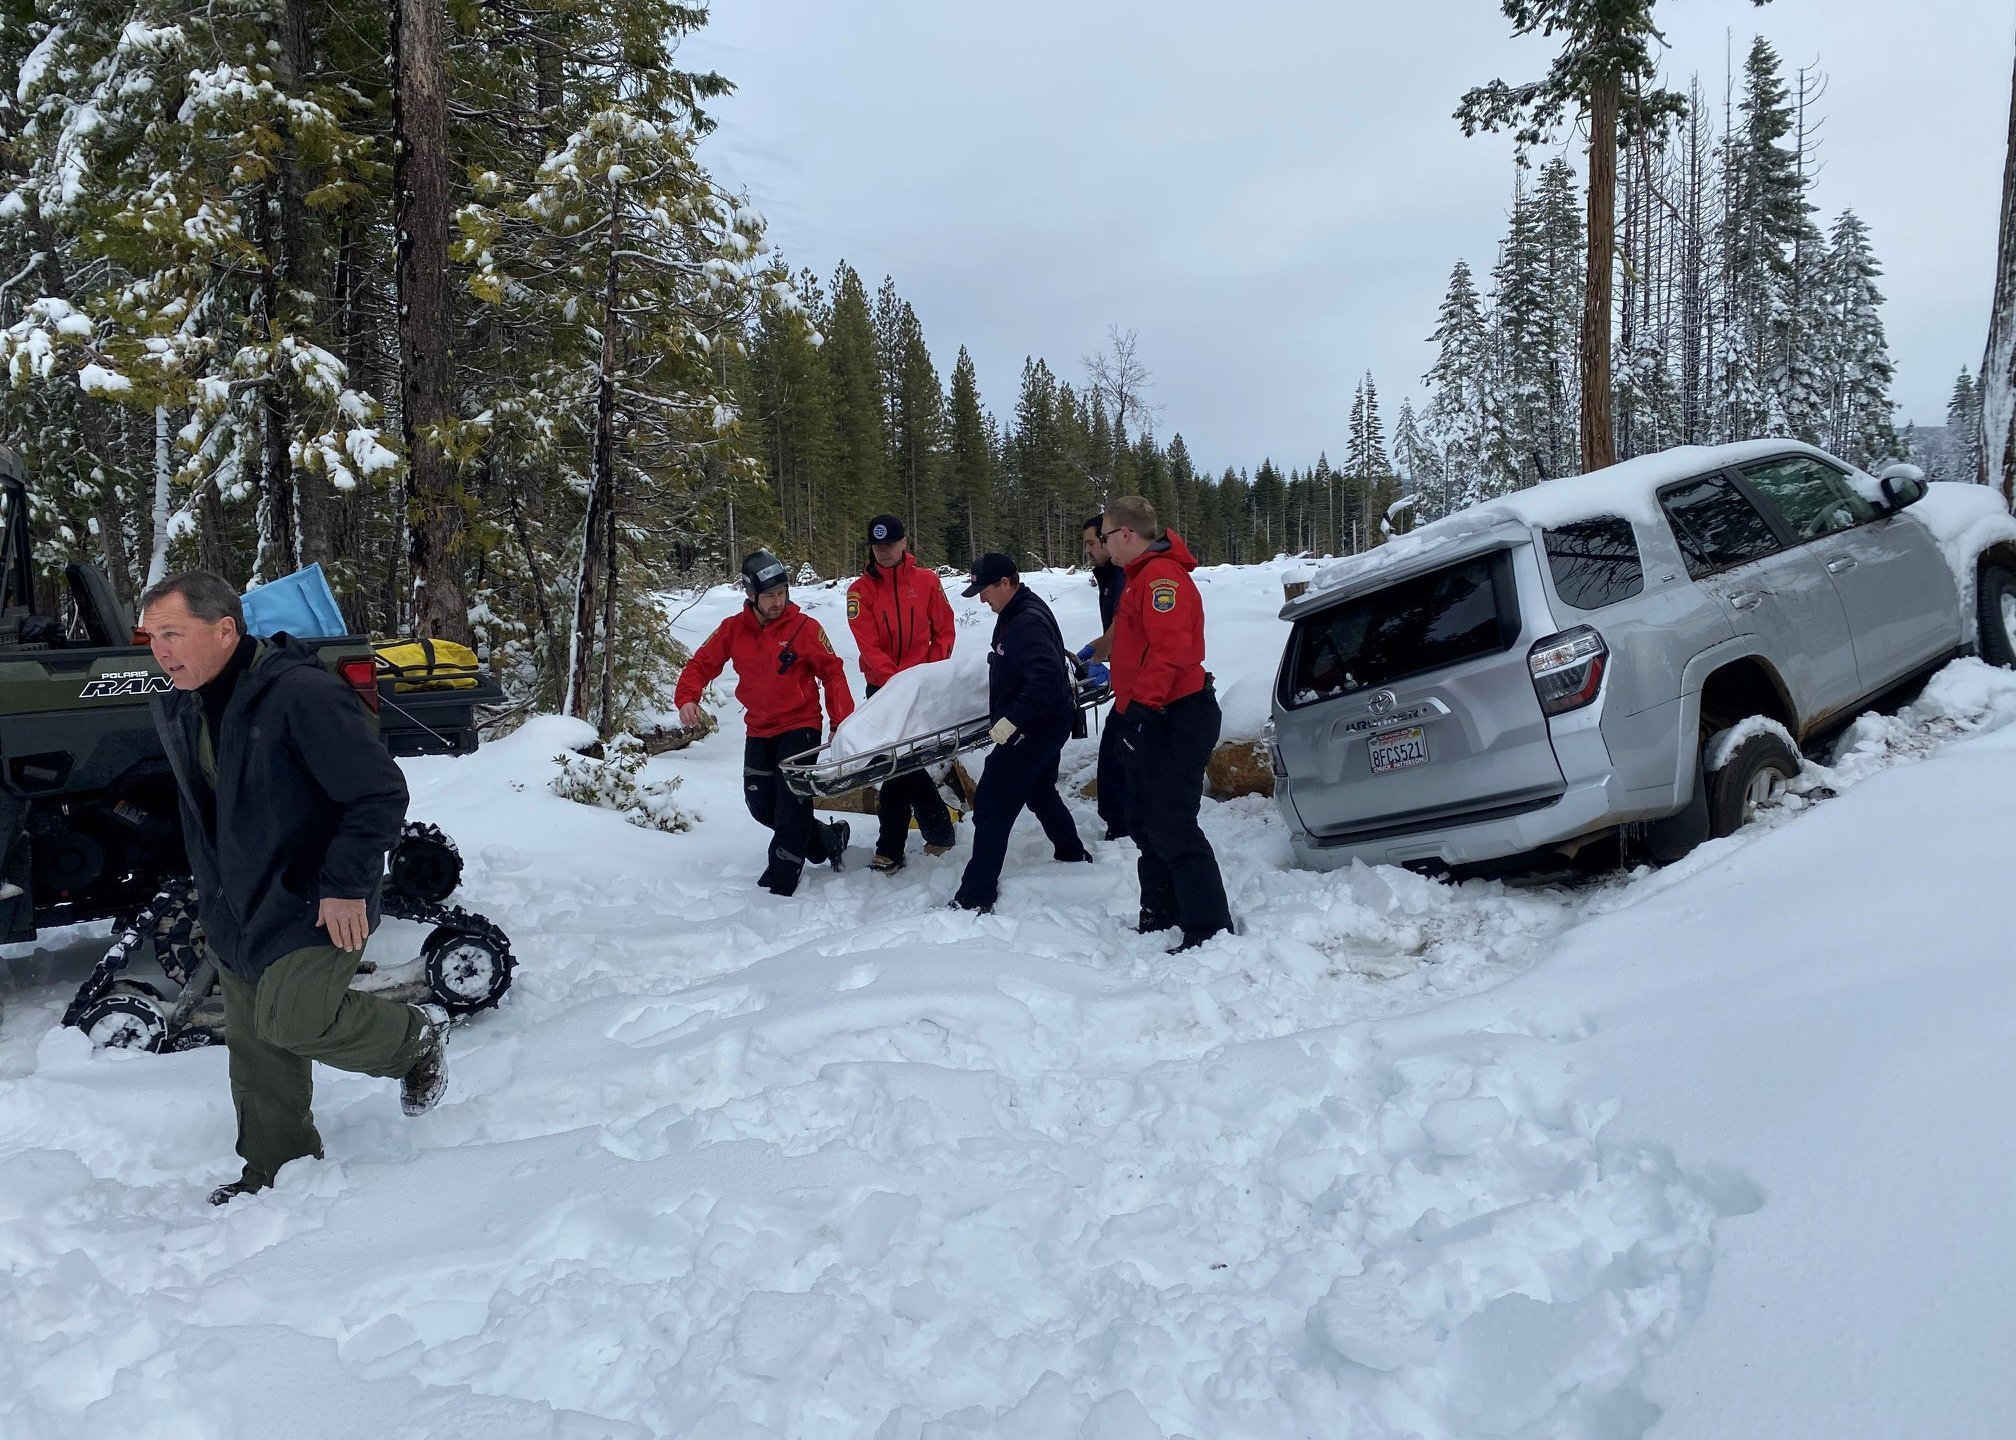 Paula Beth James is rescued from her snow-covered car on Jan. 15, 2020, after having been missing for six days in Butte Meadows. (Credit: Butte County Sheriff's Office.)